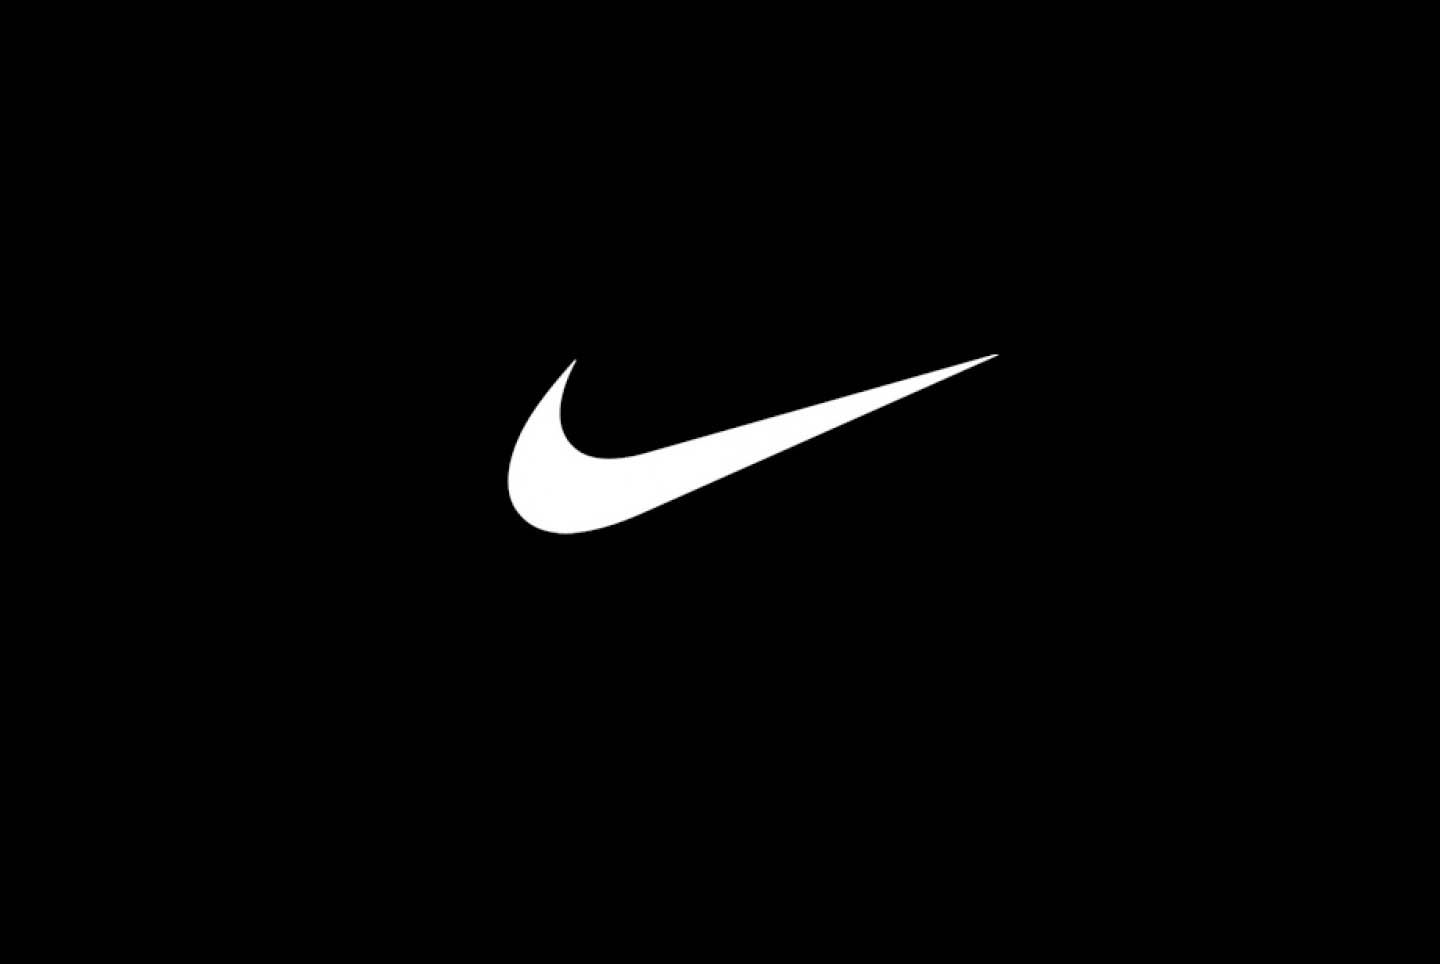 Nike Animated Wallpaper